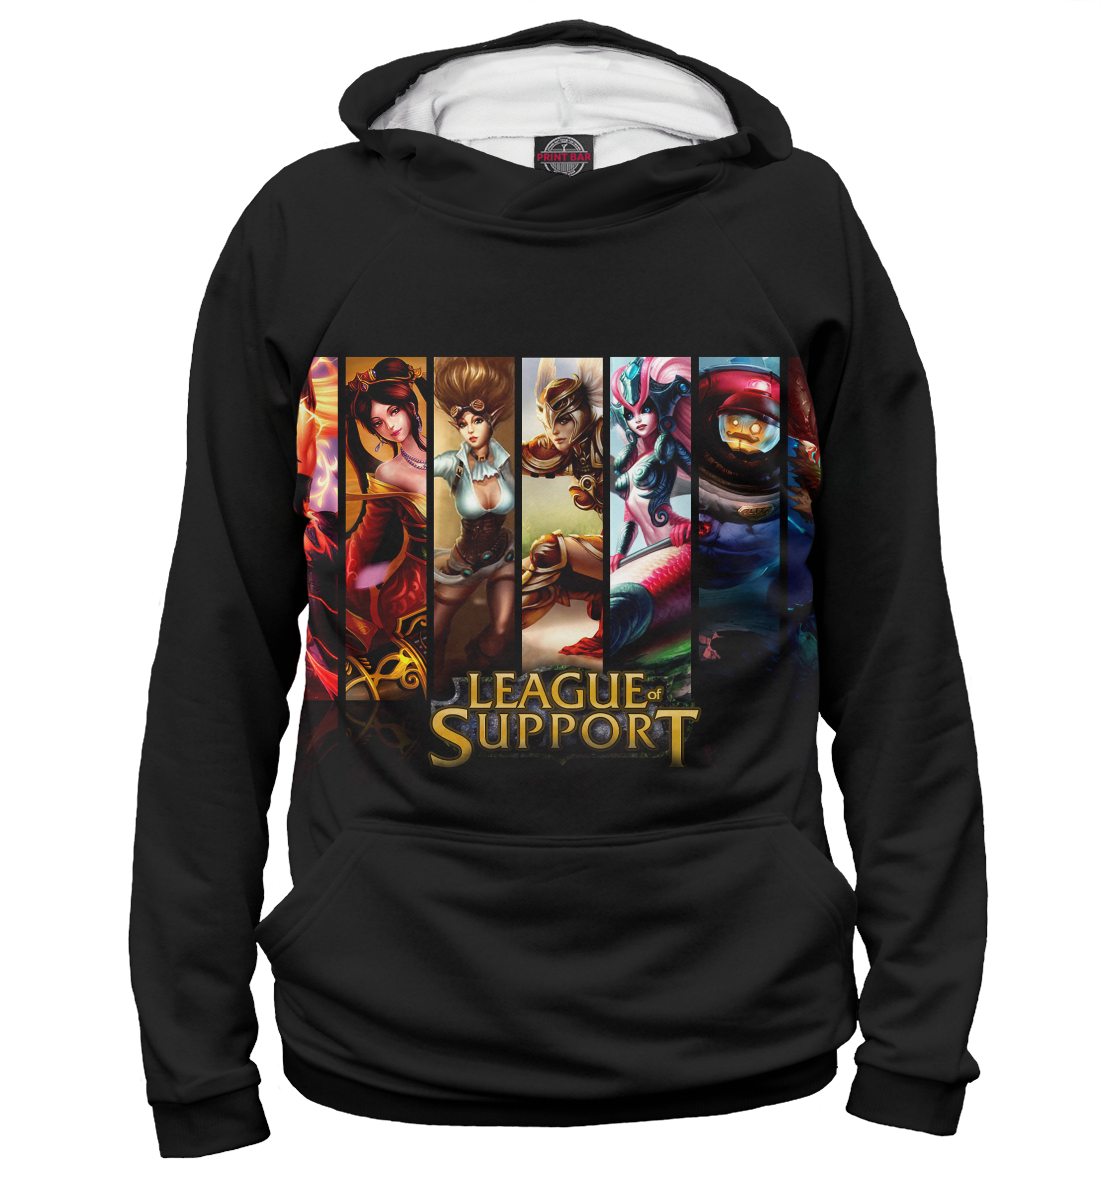 League of Support